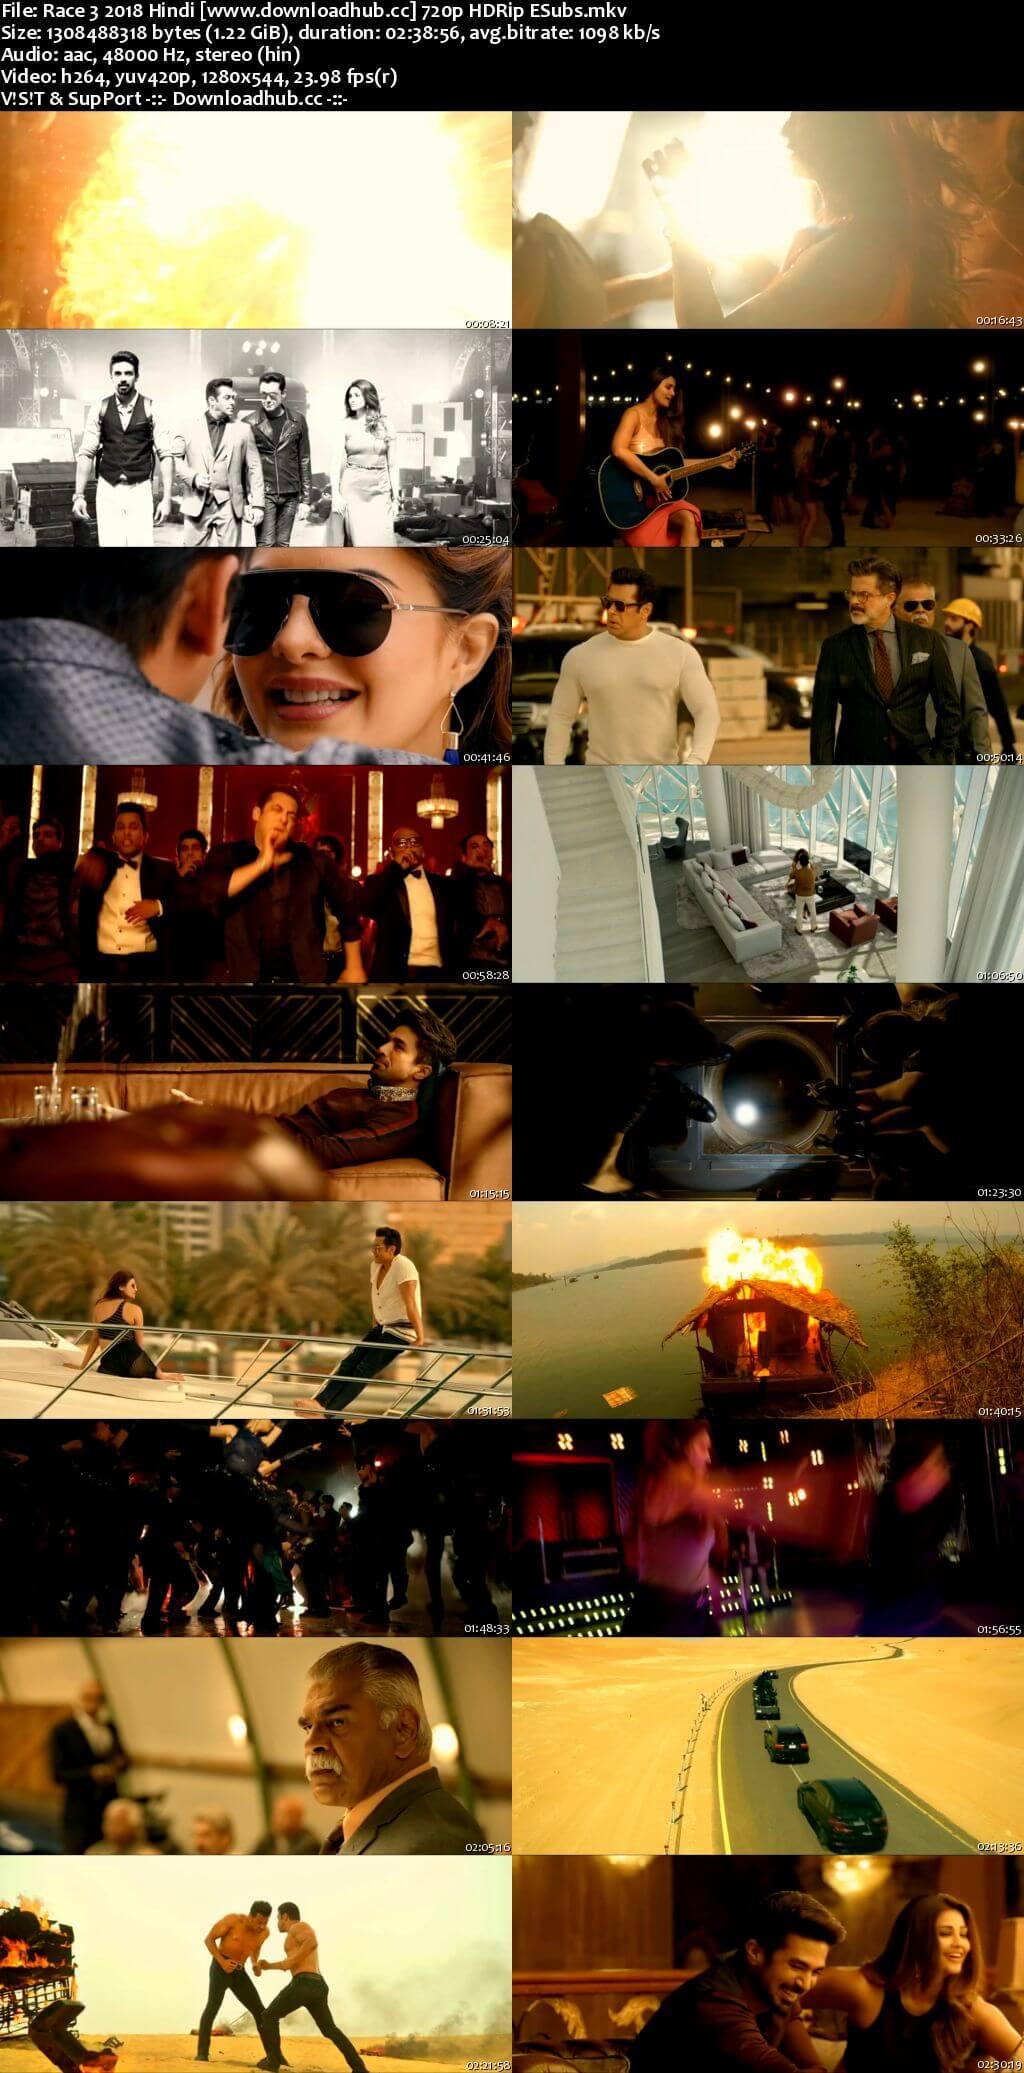 Race 3 2018 Hindi 720p HDRip ESubs